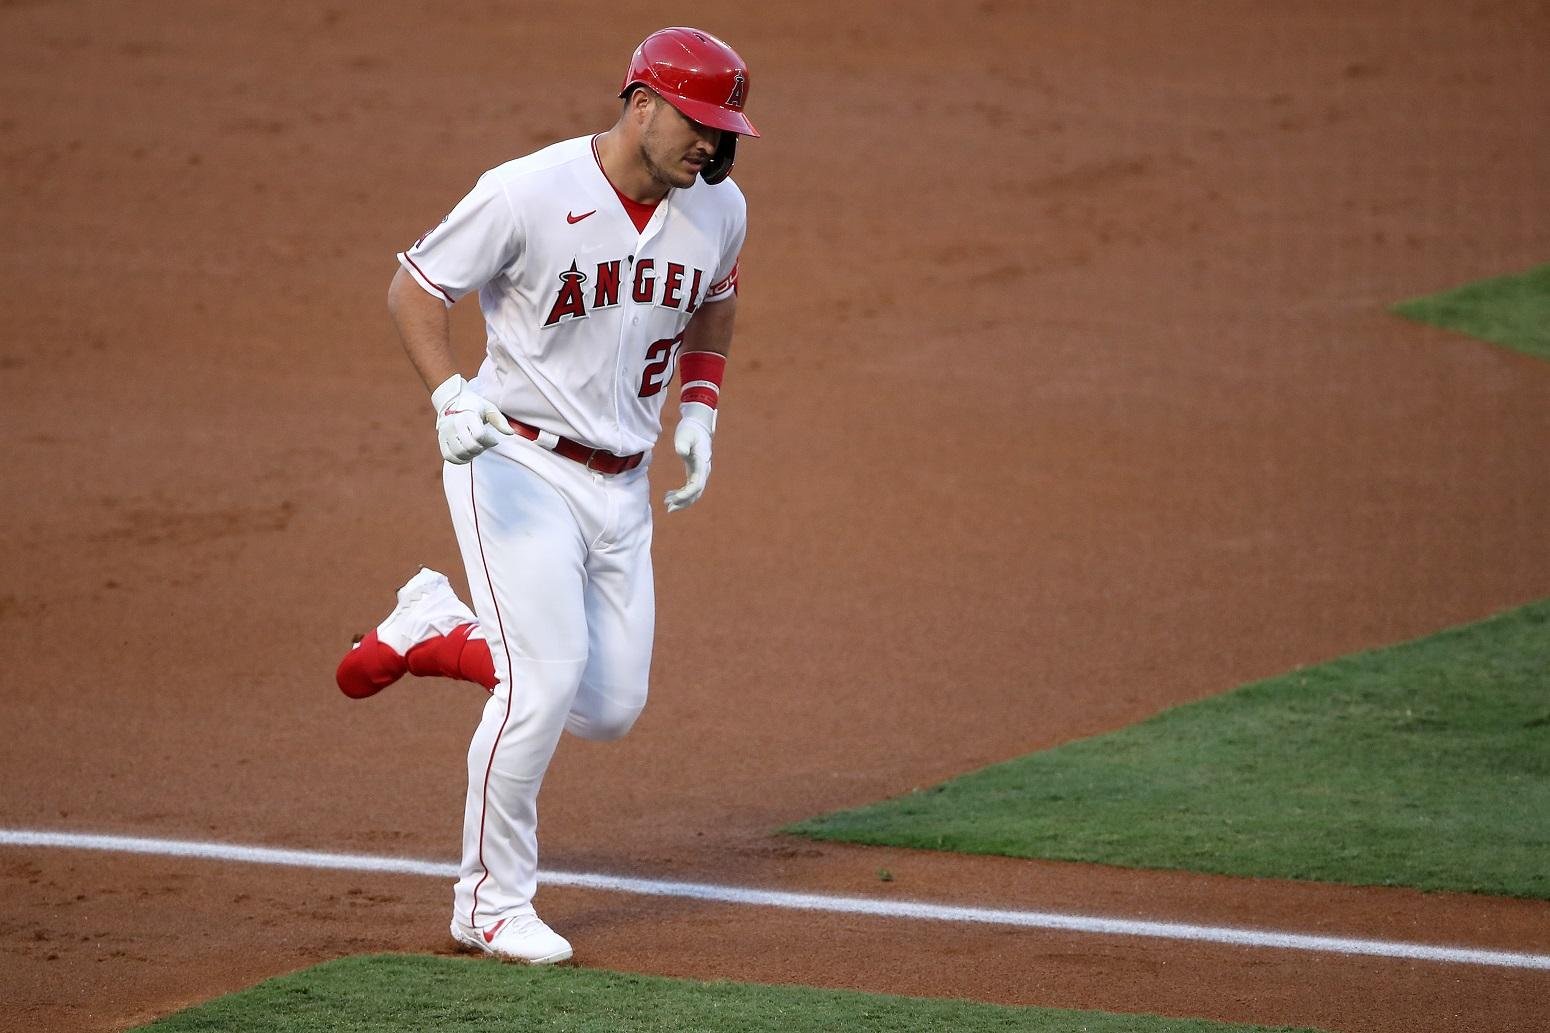 Mike Trout Just Did Something That Not Even Willie Mays Could Do